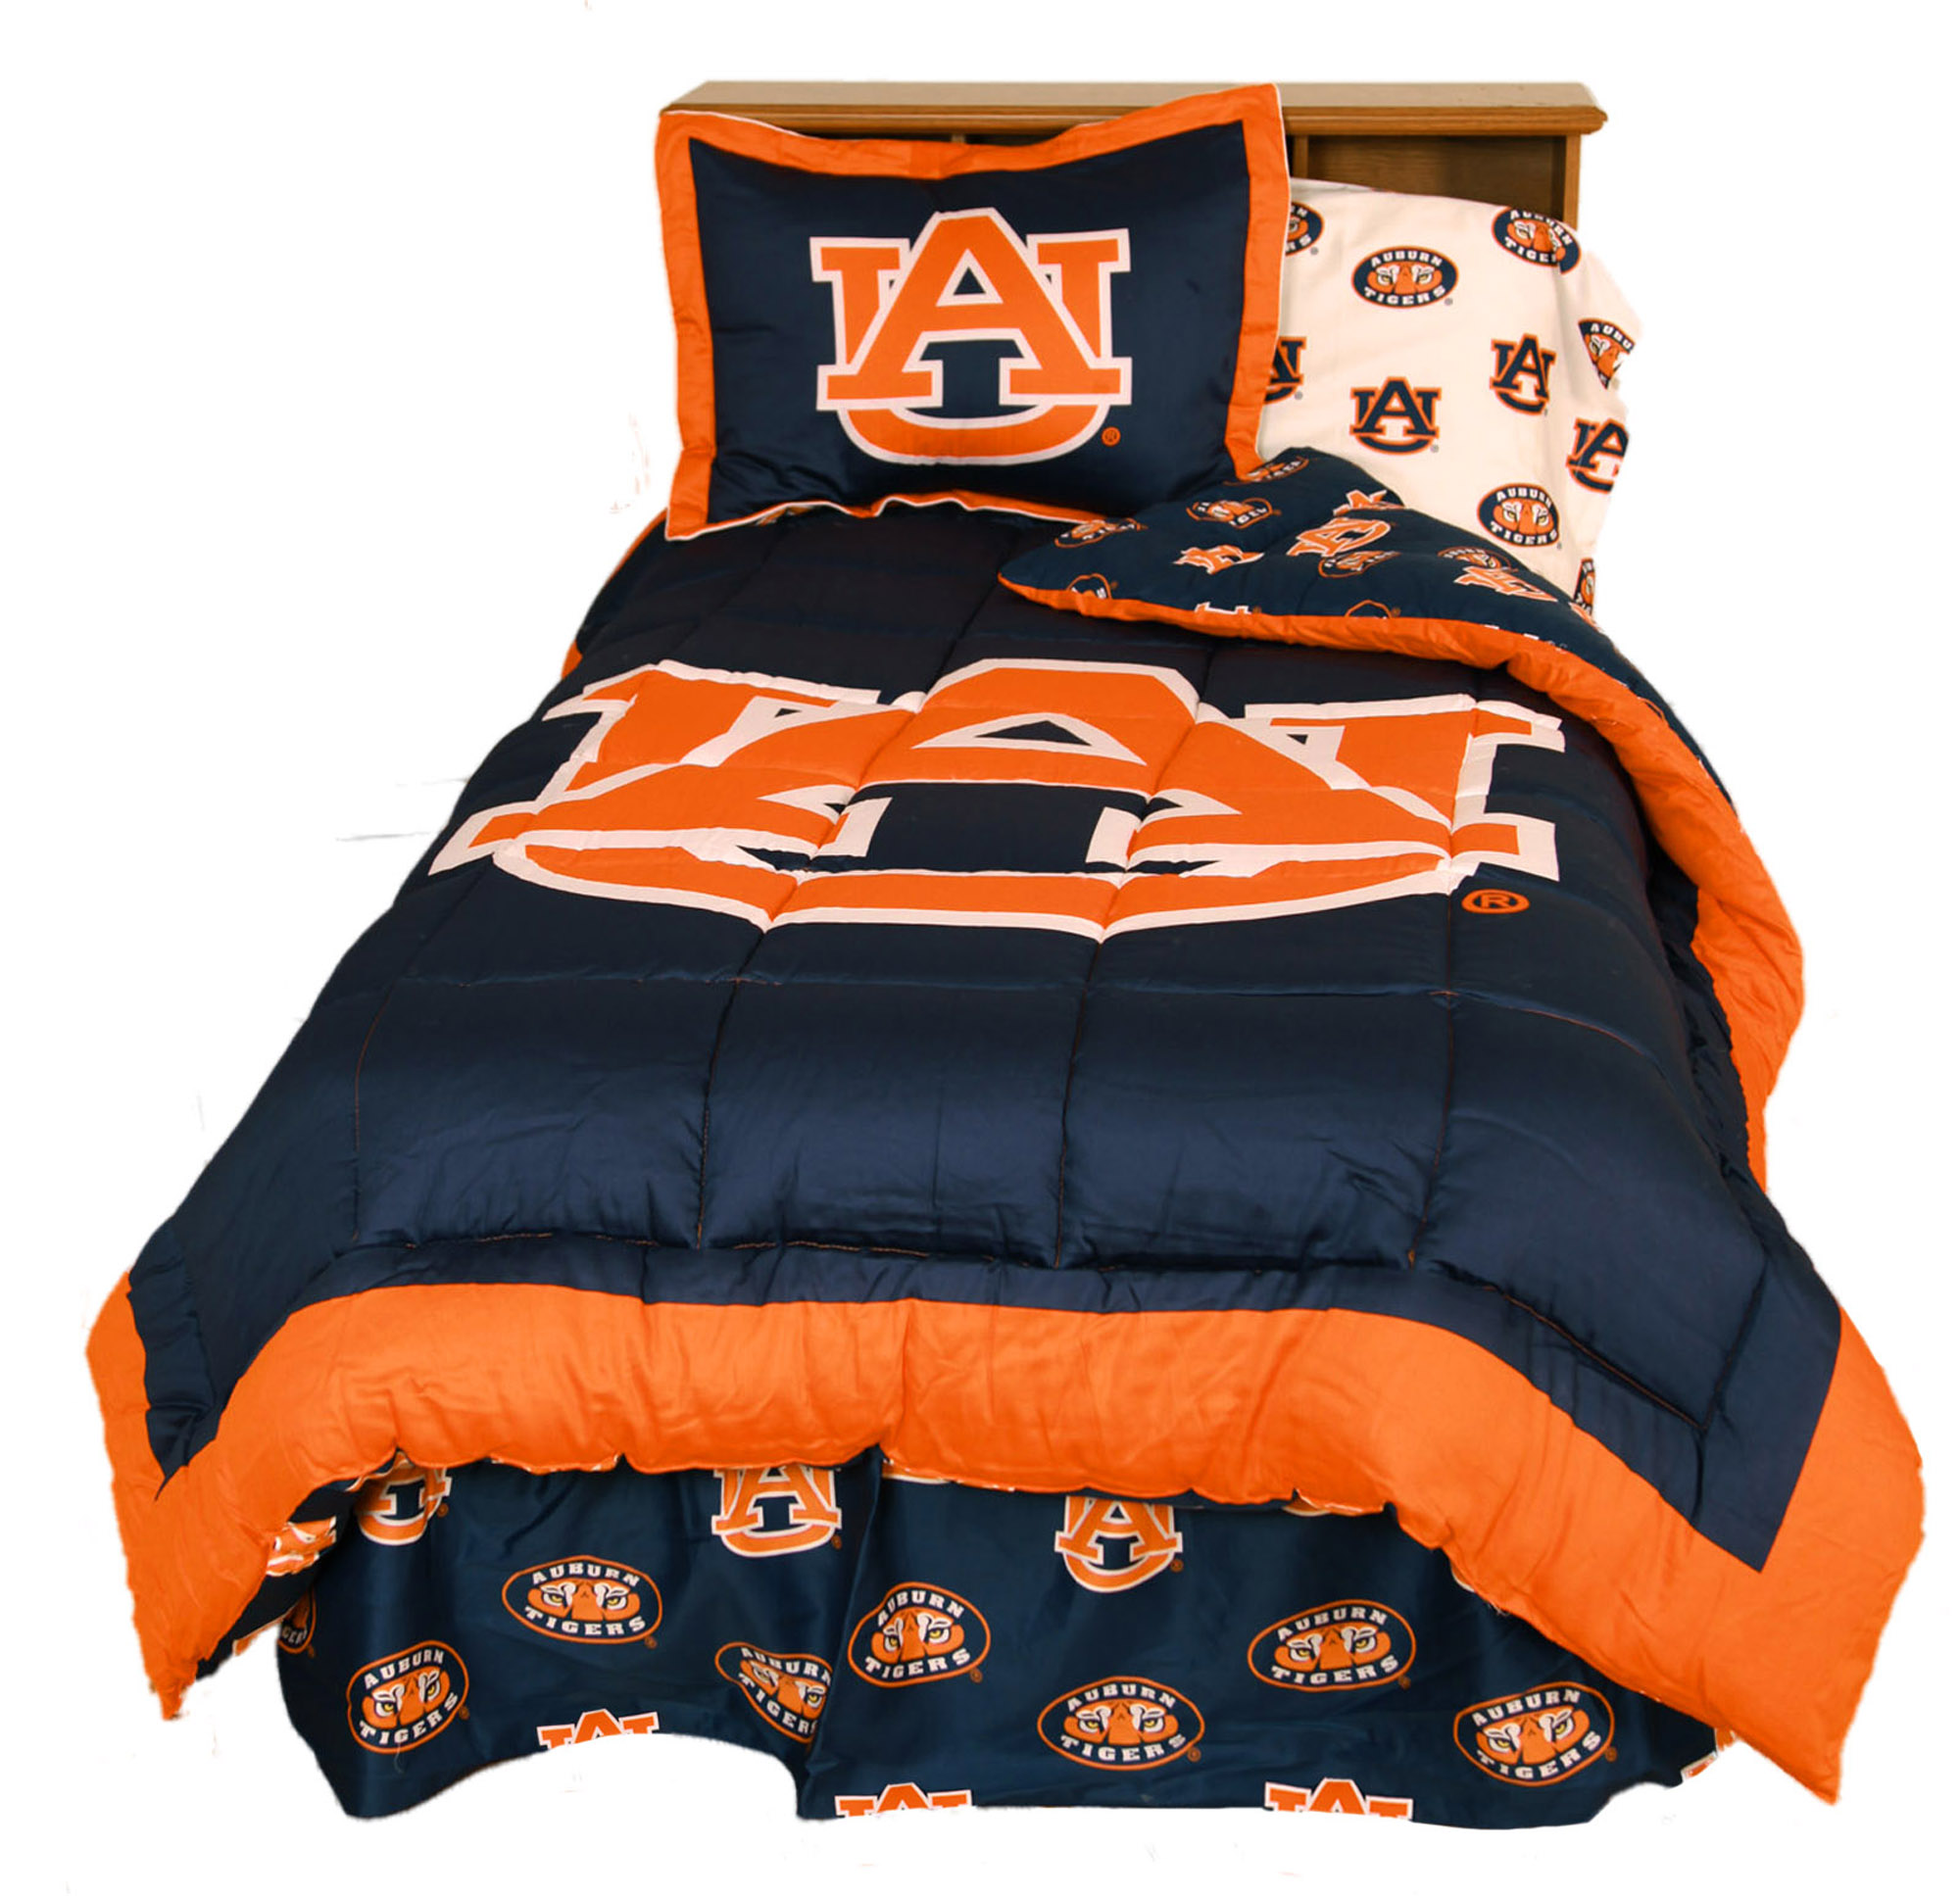 Auburn Tigers 2 Pc Comforter Set, 1 Comforter, 1 Sham, Twin